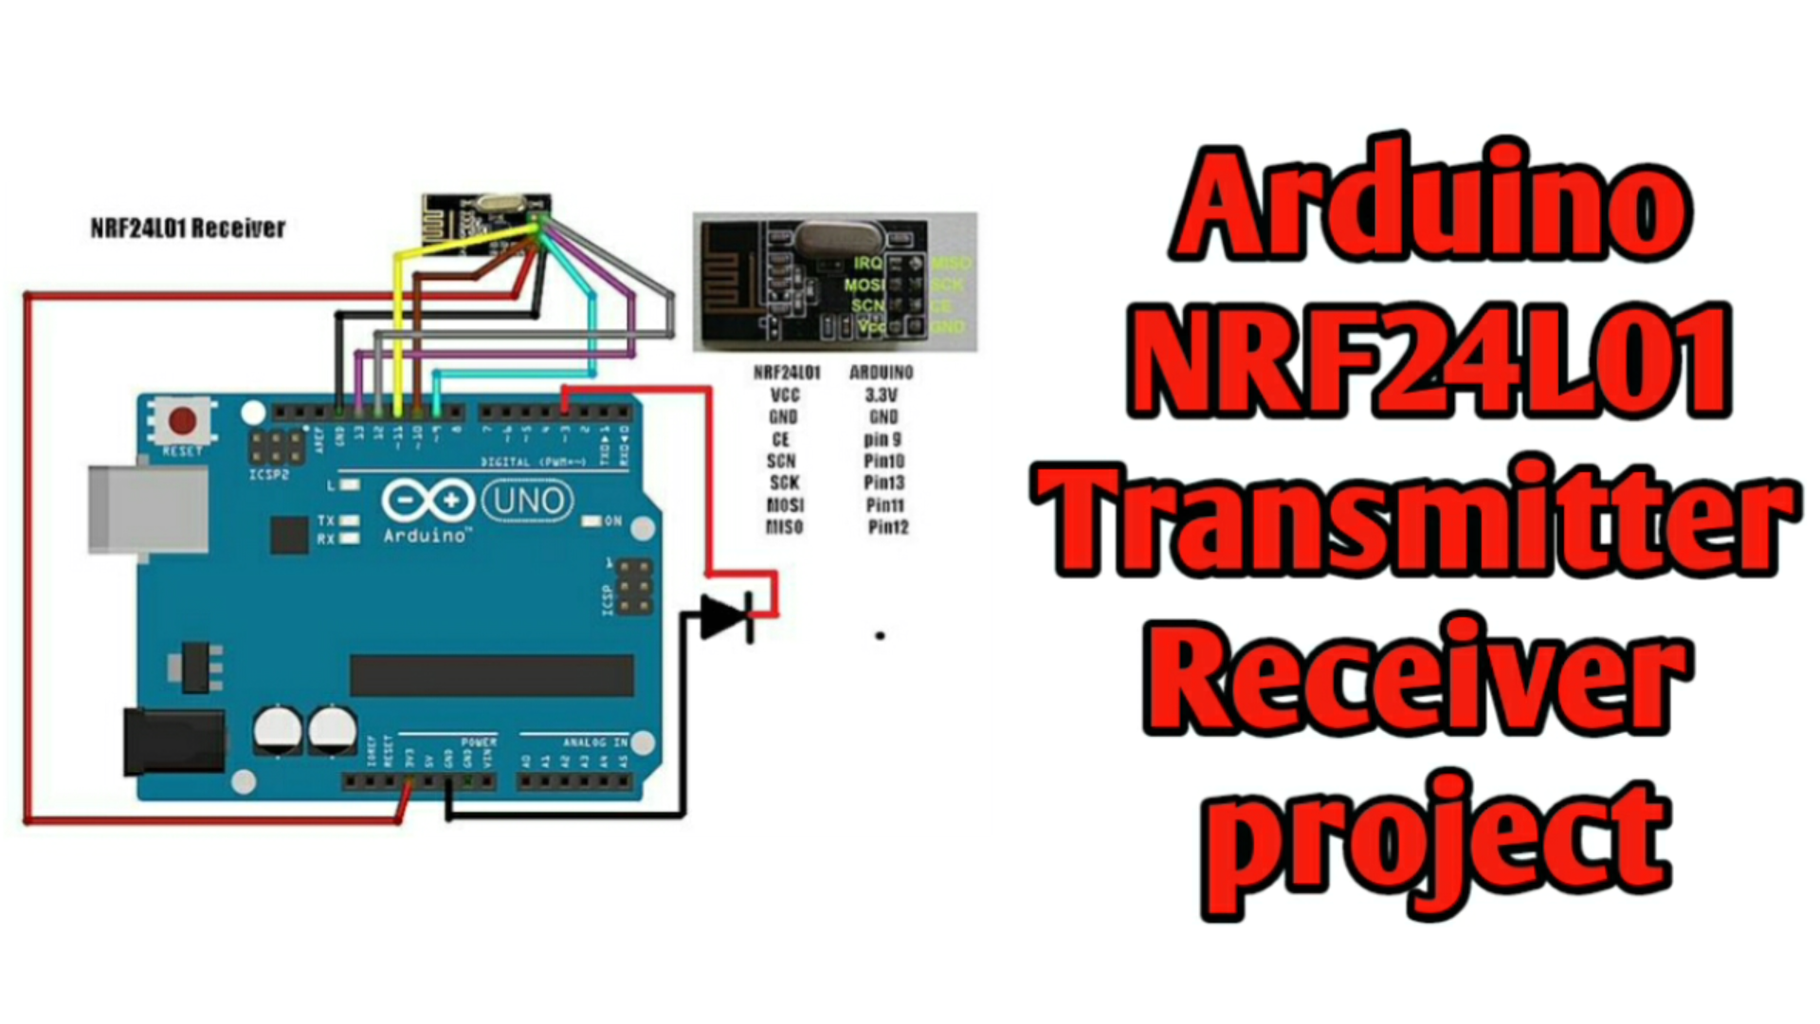 Wireless Remote Using 2.4Ghz NRF24L01 Module With Arduino   Nrf24l01 4 Channel / 6 Channel Transmitter Receiver for Quadcopter   Rc Helicopter   Rc Plane Using Arduino